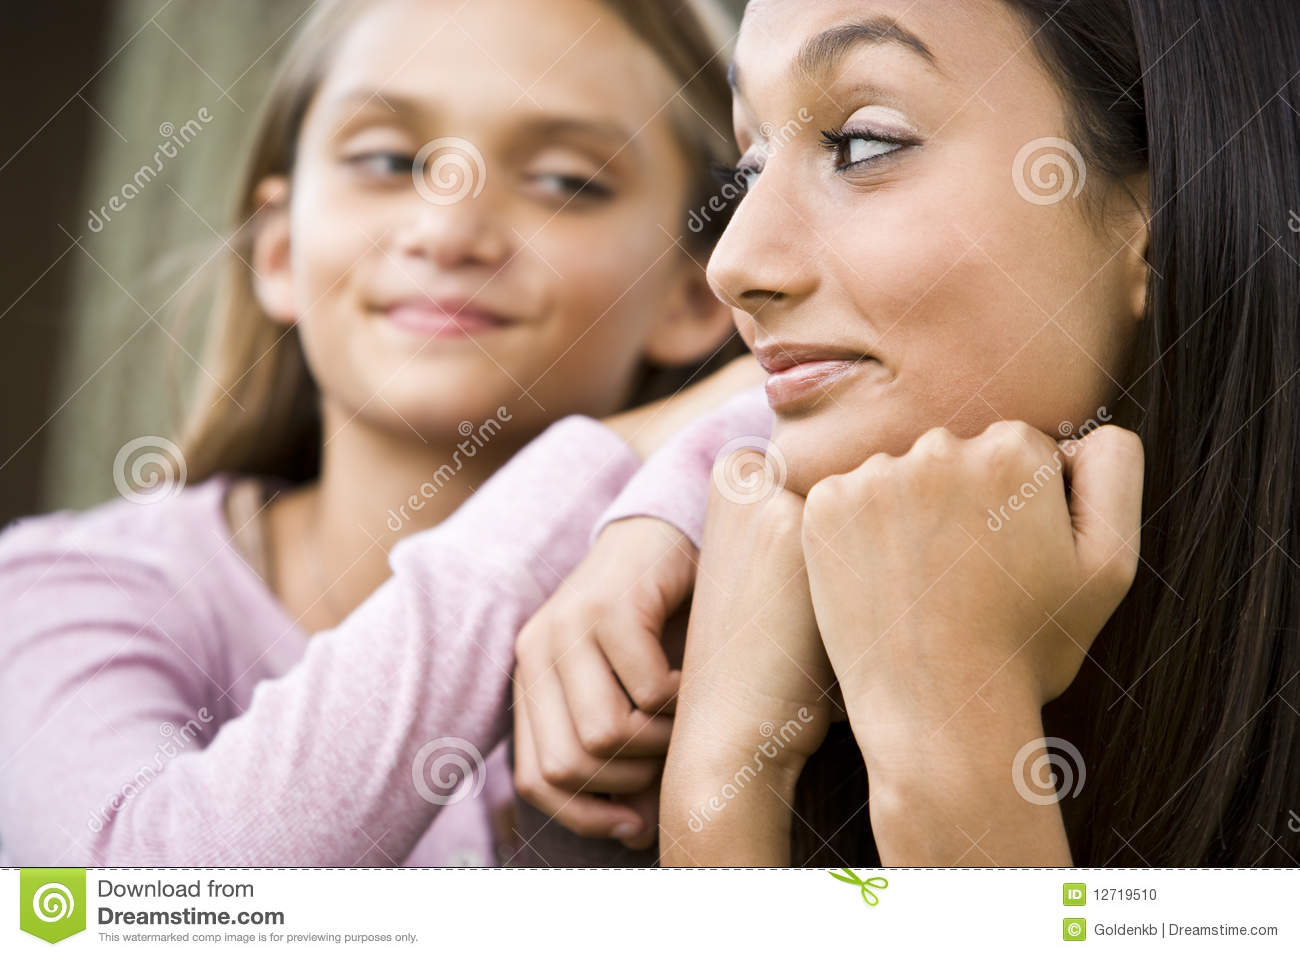 Close-up of teenage girl and younger sister